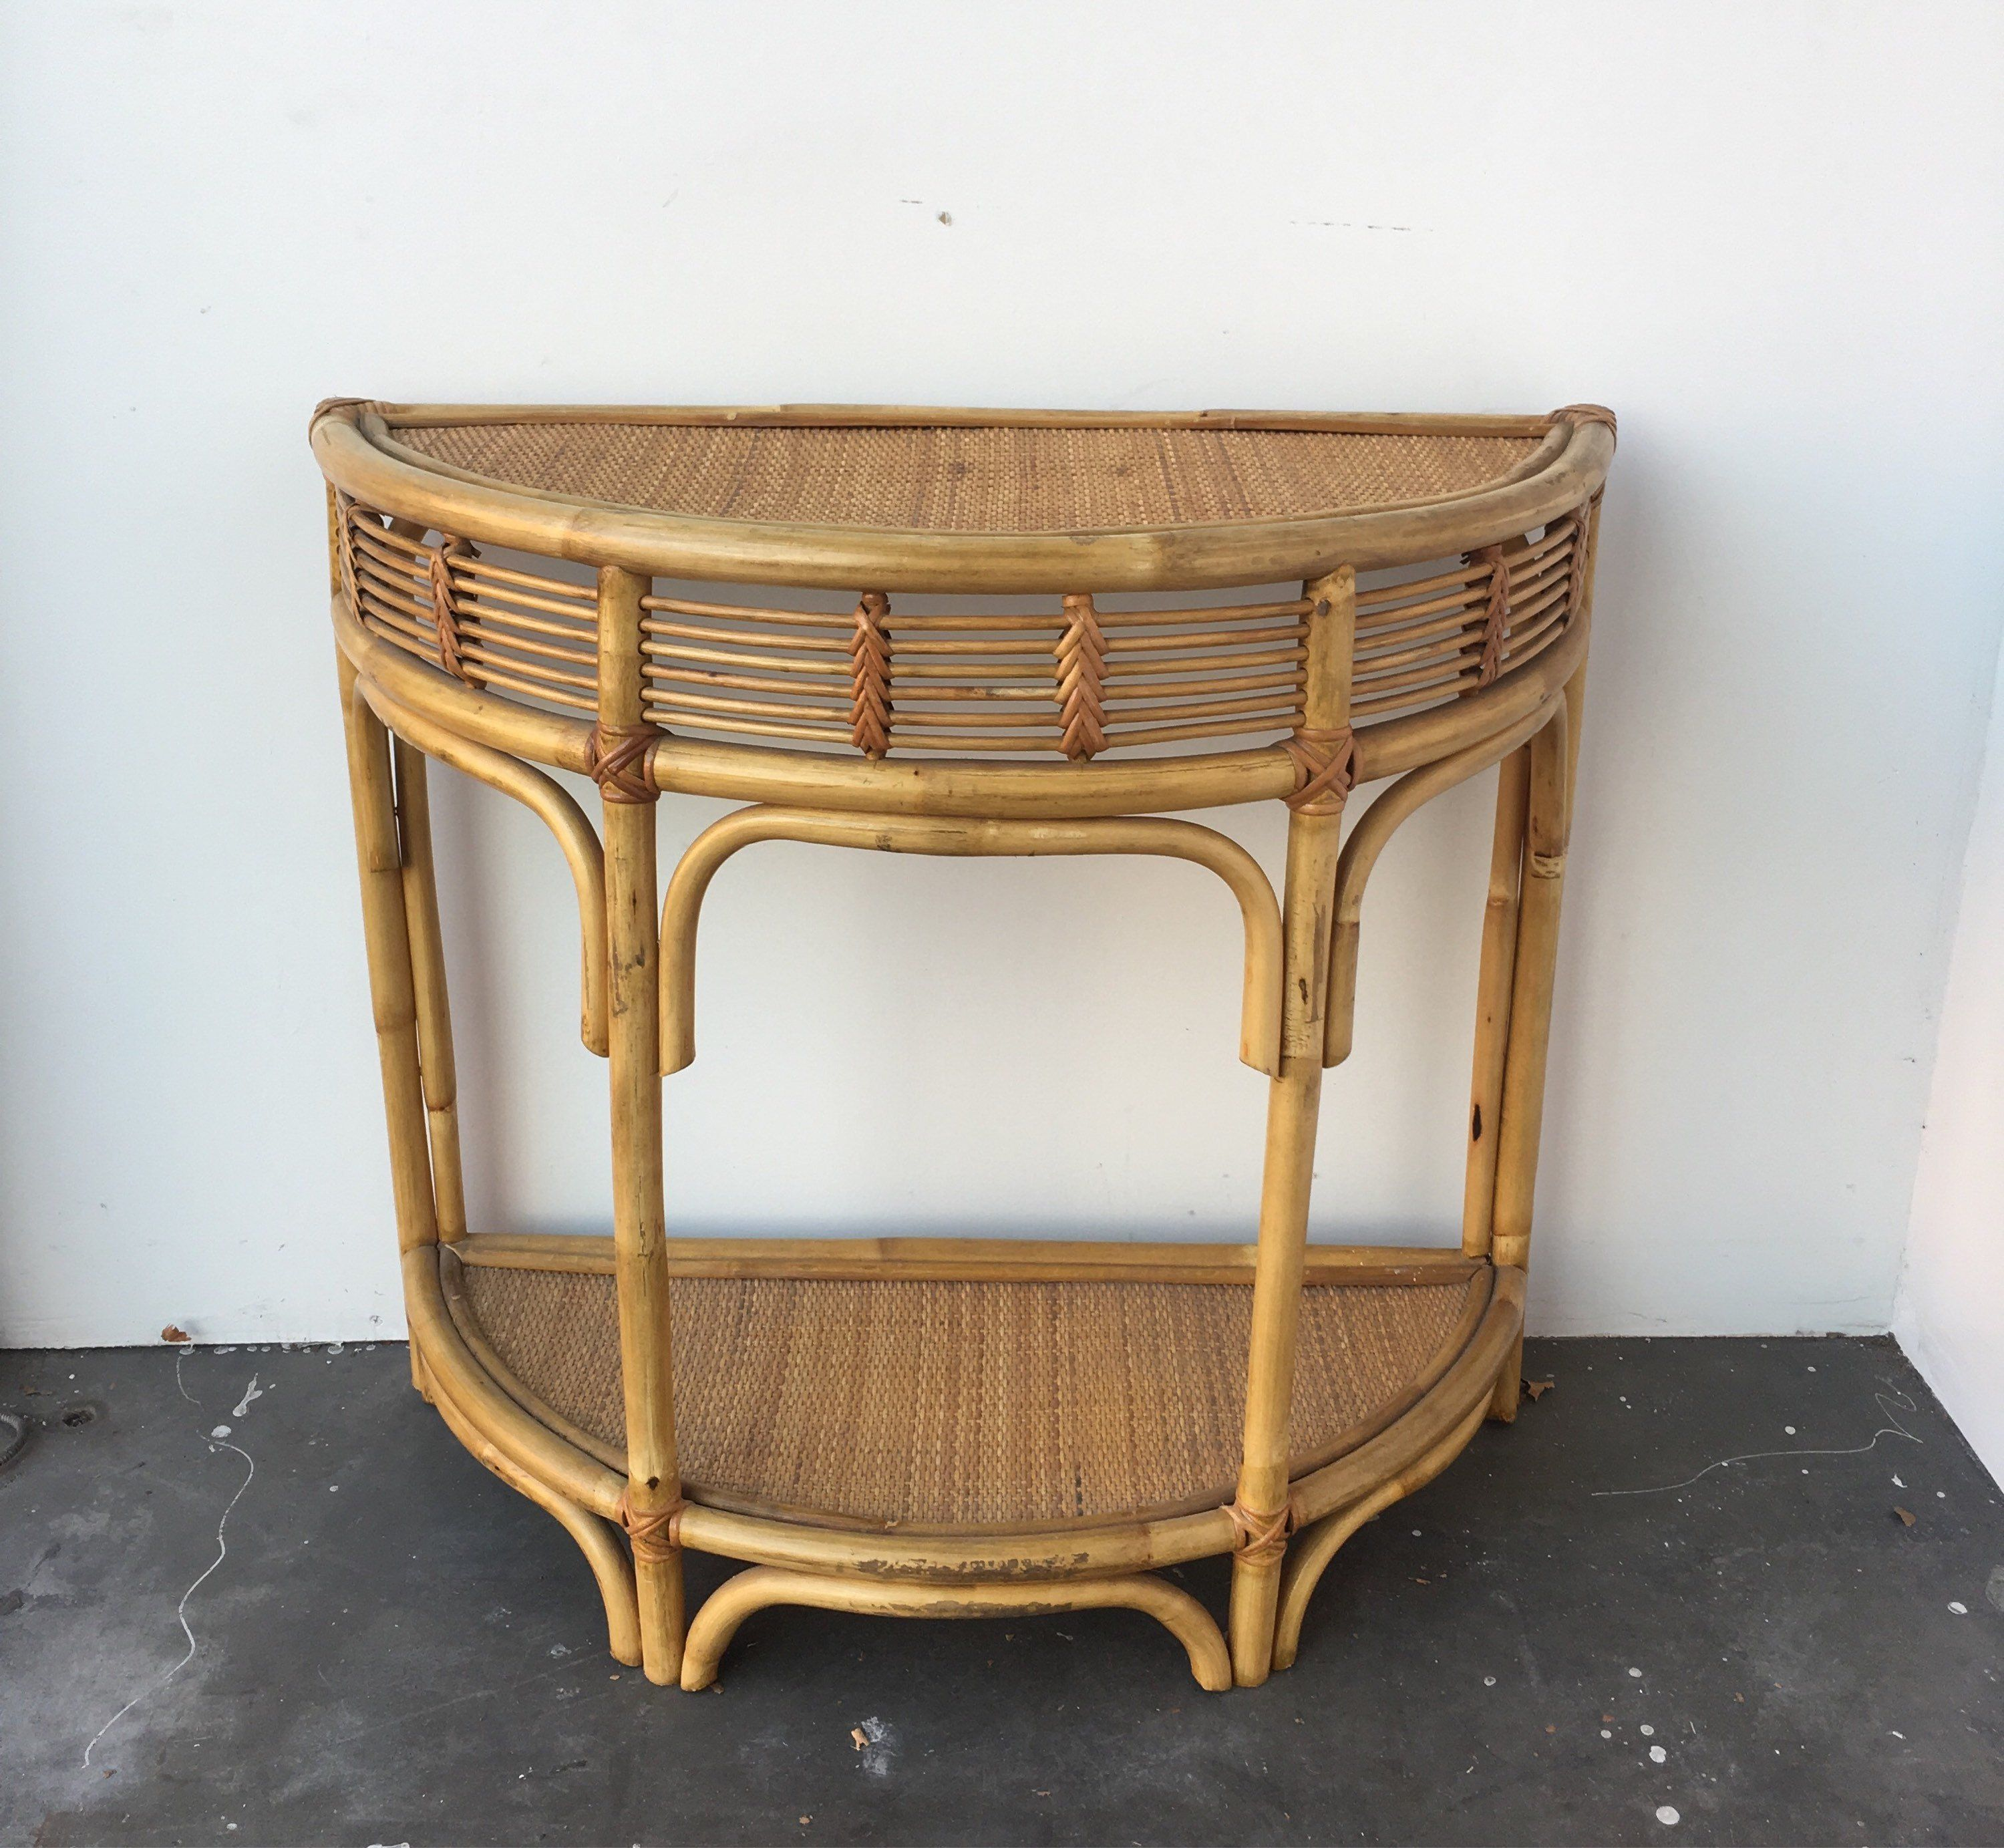 Vintage Bamboo Table Woven Rattan Console Table Small Etsy Bamboo Table Small Entryway Table Table